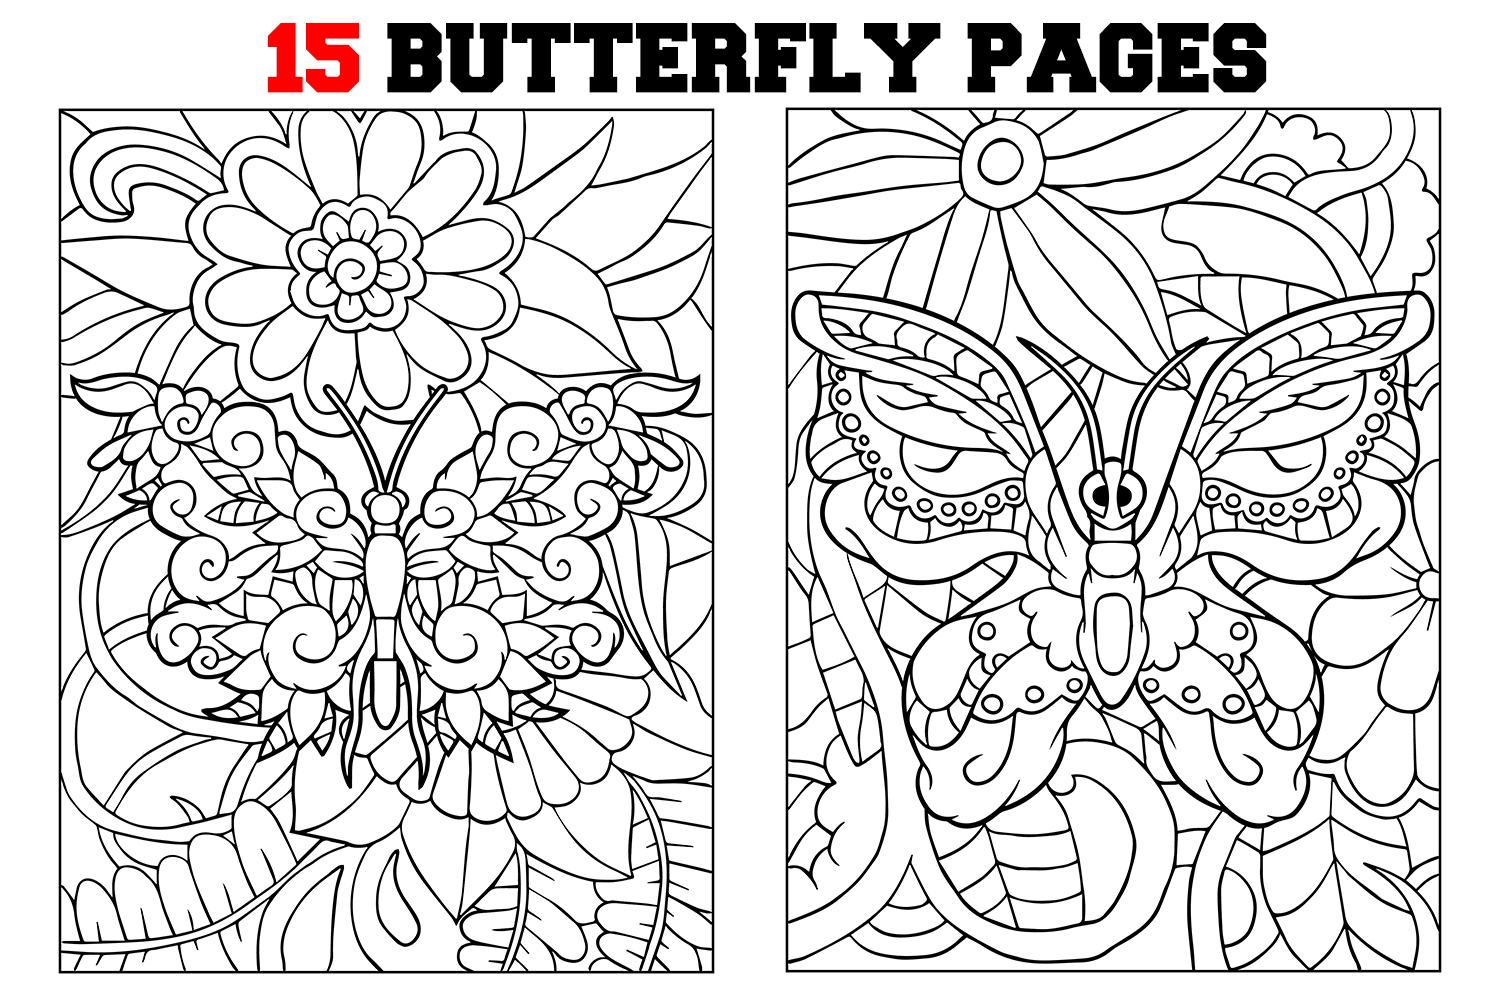 Coloring Pages For Kids 15 Butterfly Coloring Pages